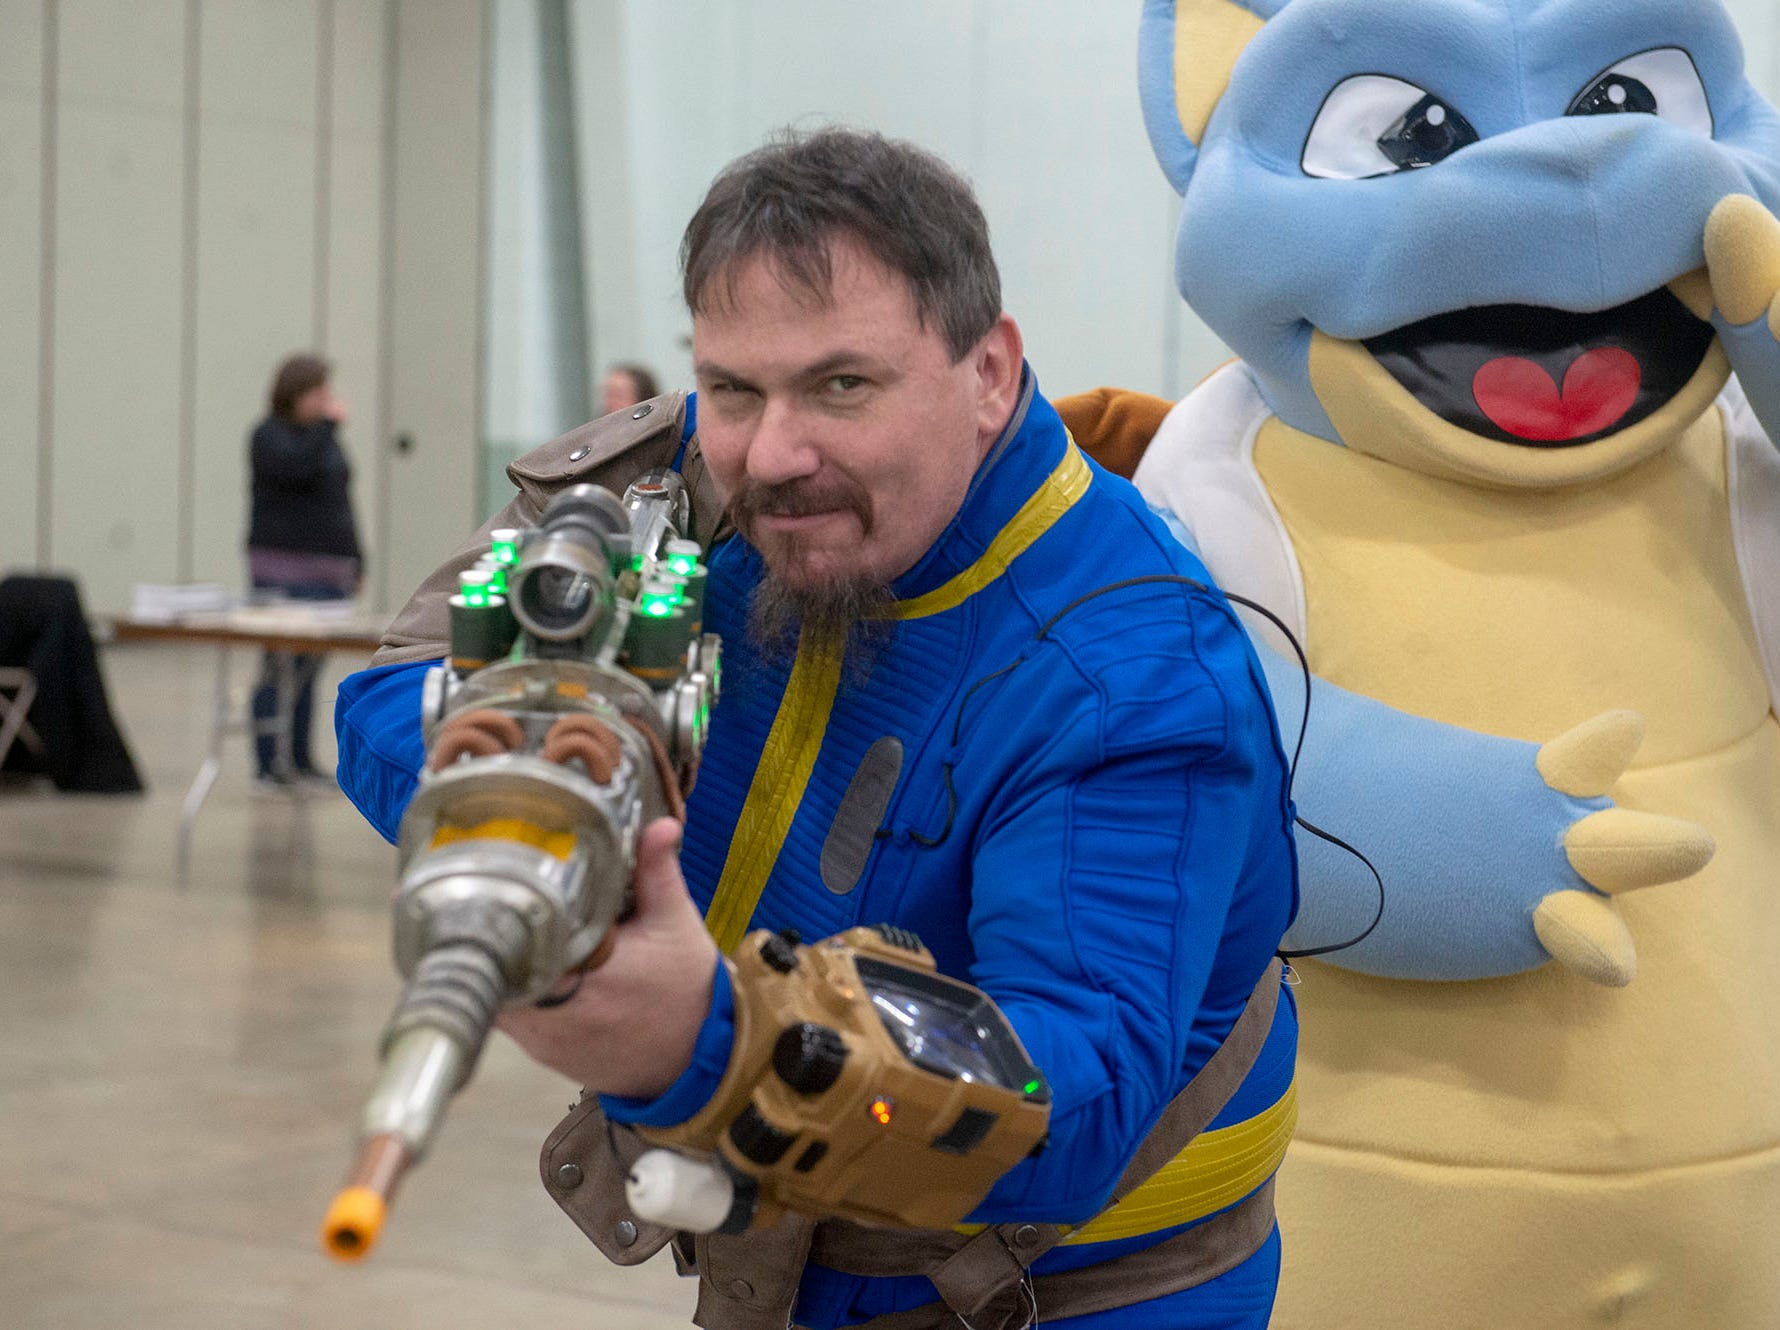 It's common to see fans attend comic cons in the costume of their favorite character. That was the case Saturday at the White Rose Comic Con, which runs through Sunday, March 24, 2019 at Utz Arena of the York Fairgrounds.